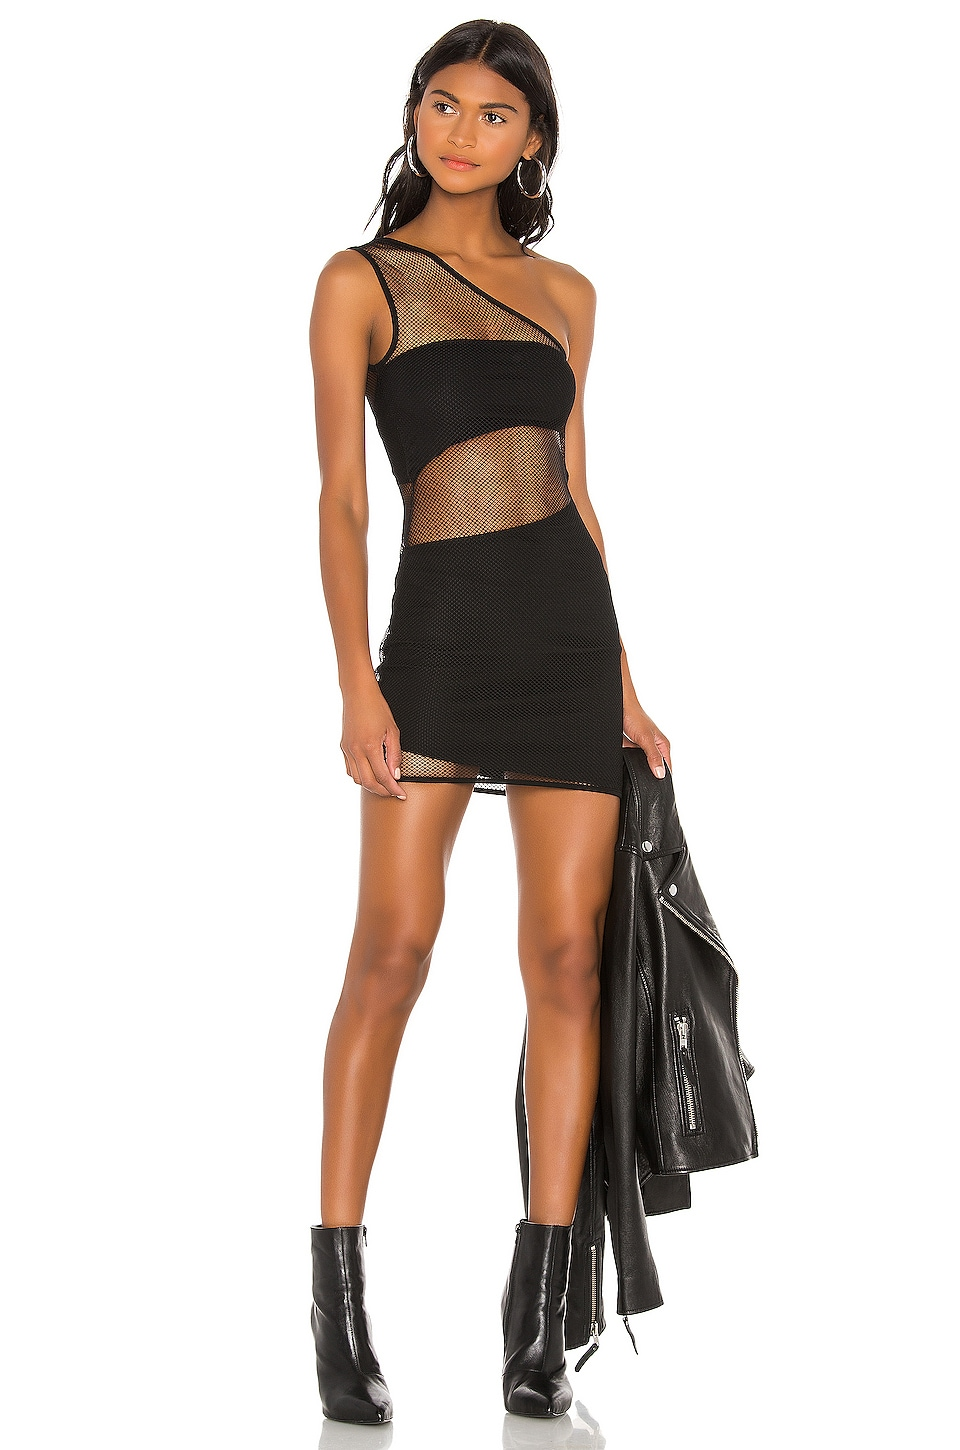 h:ours Sherwood Mini Dress in Black